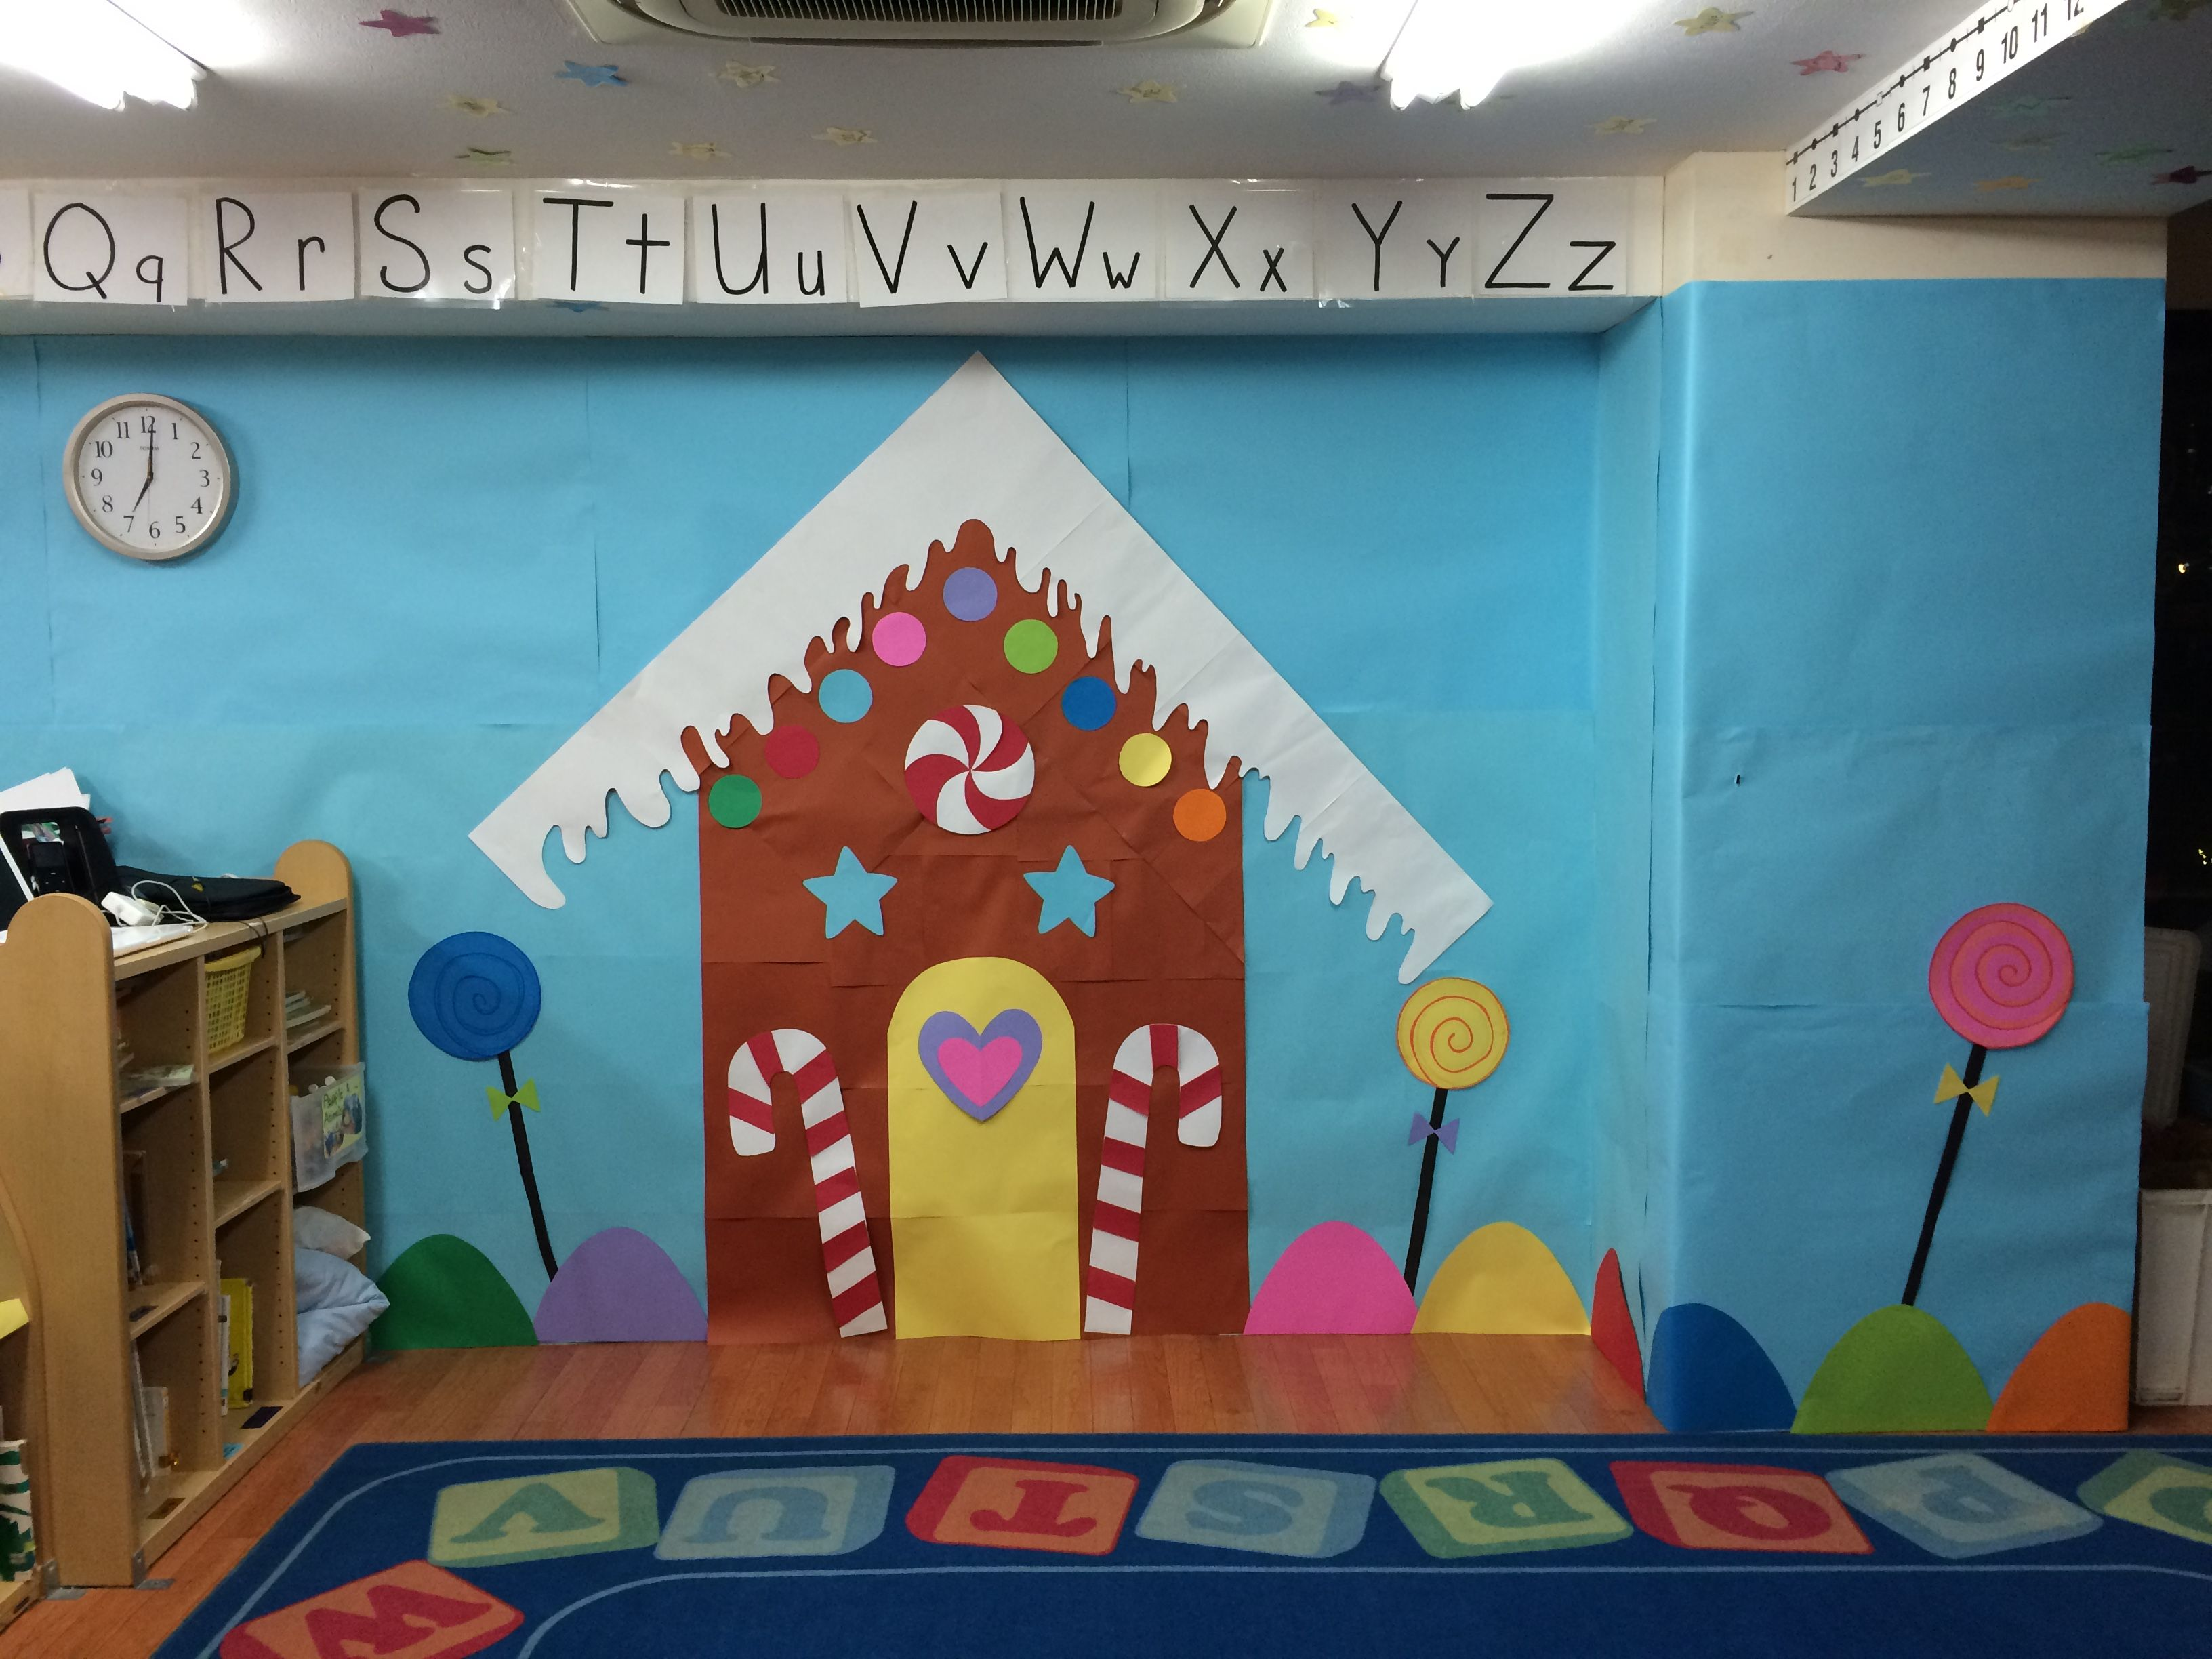 School Wall Decorations To Make Our Class Room Bright With